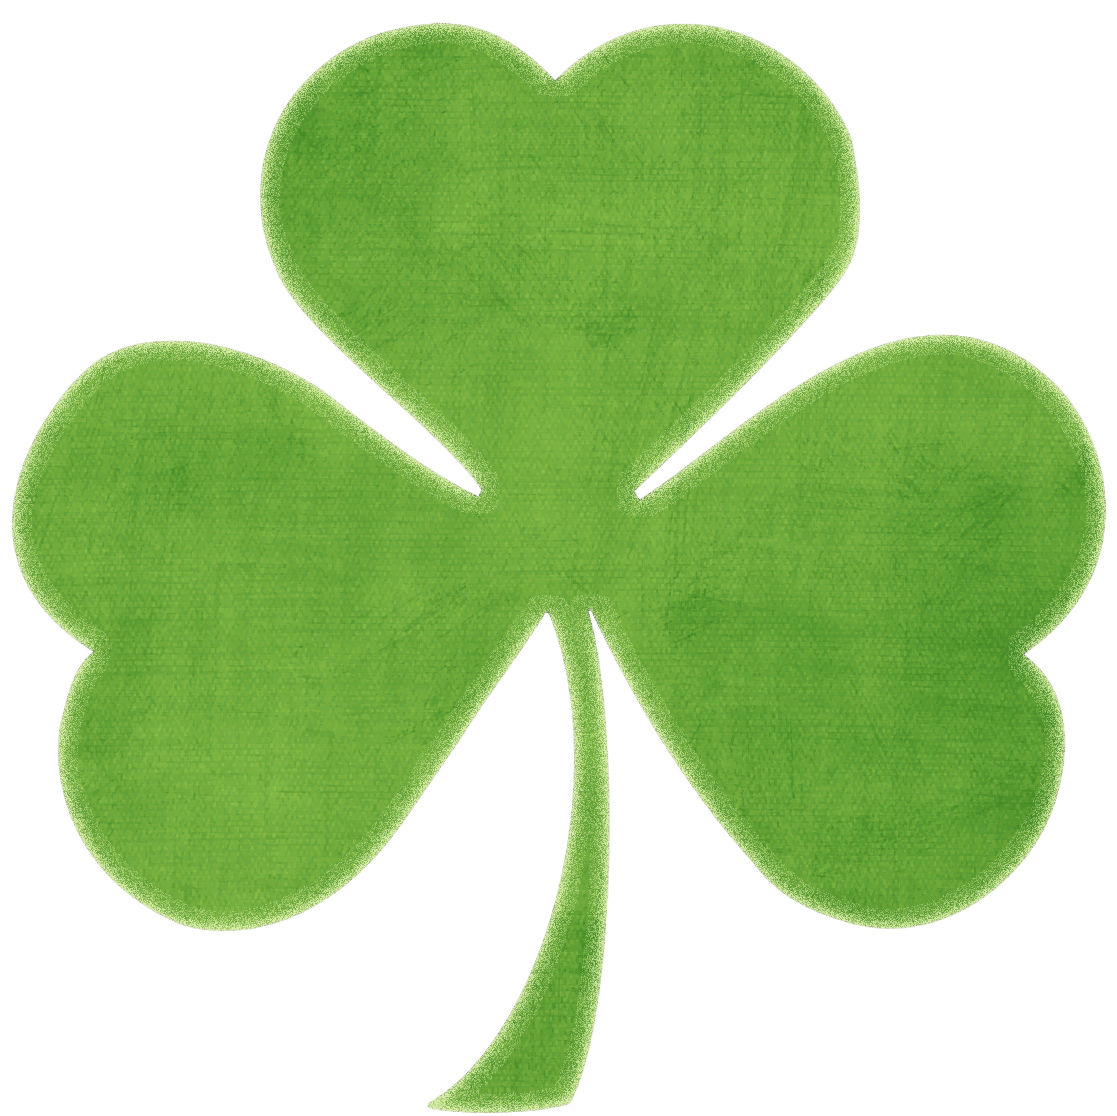 Irish clover png. Shamrock picture gallery yopriceville